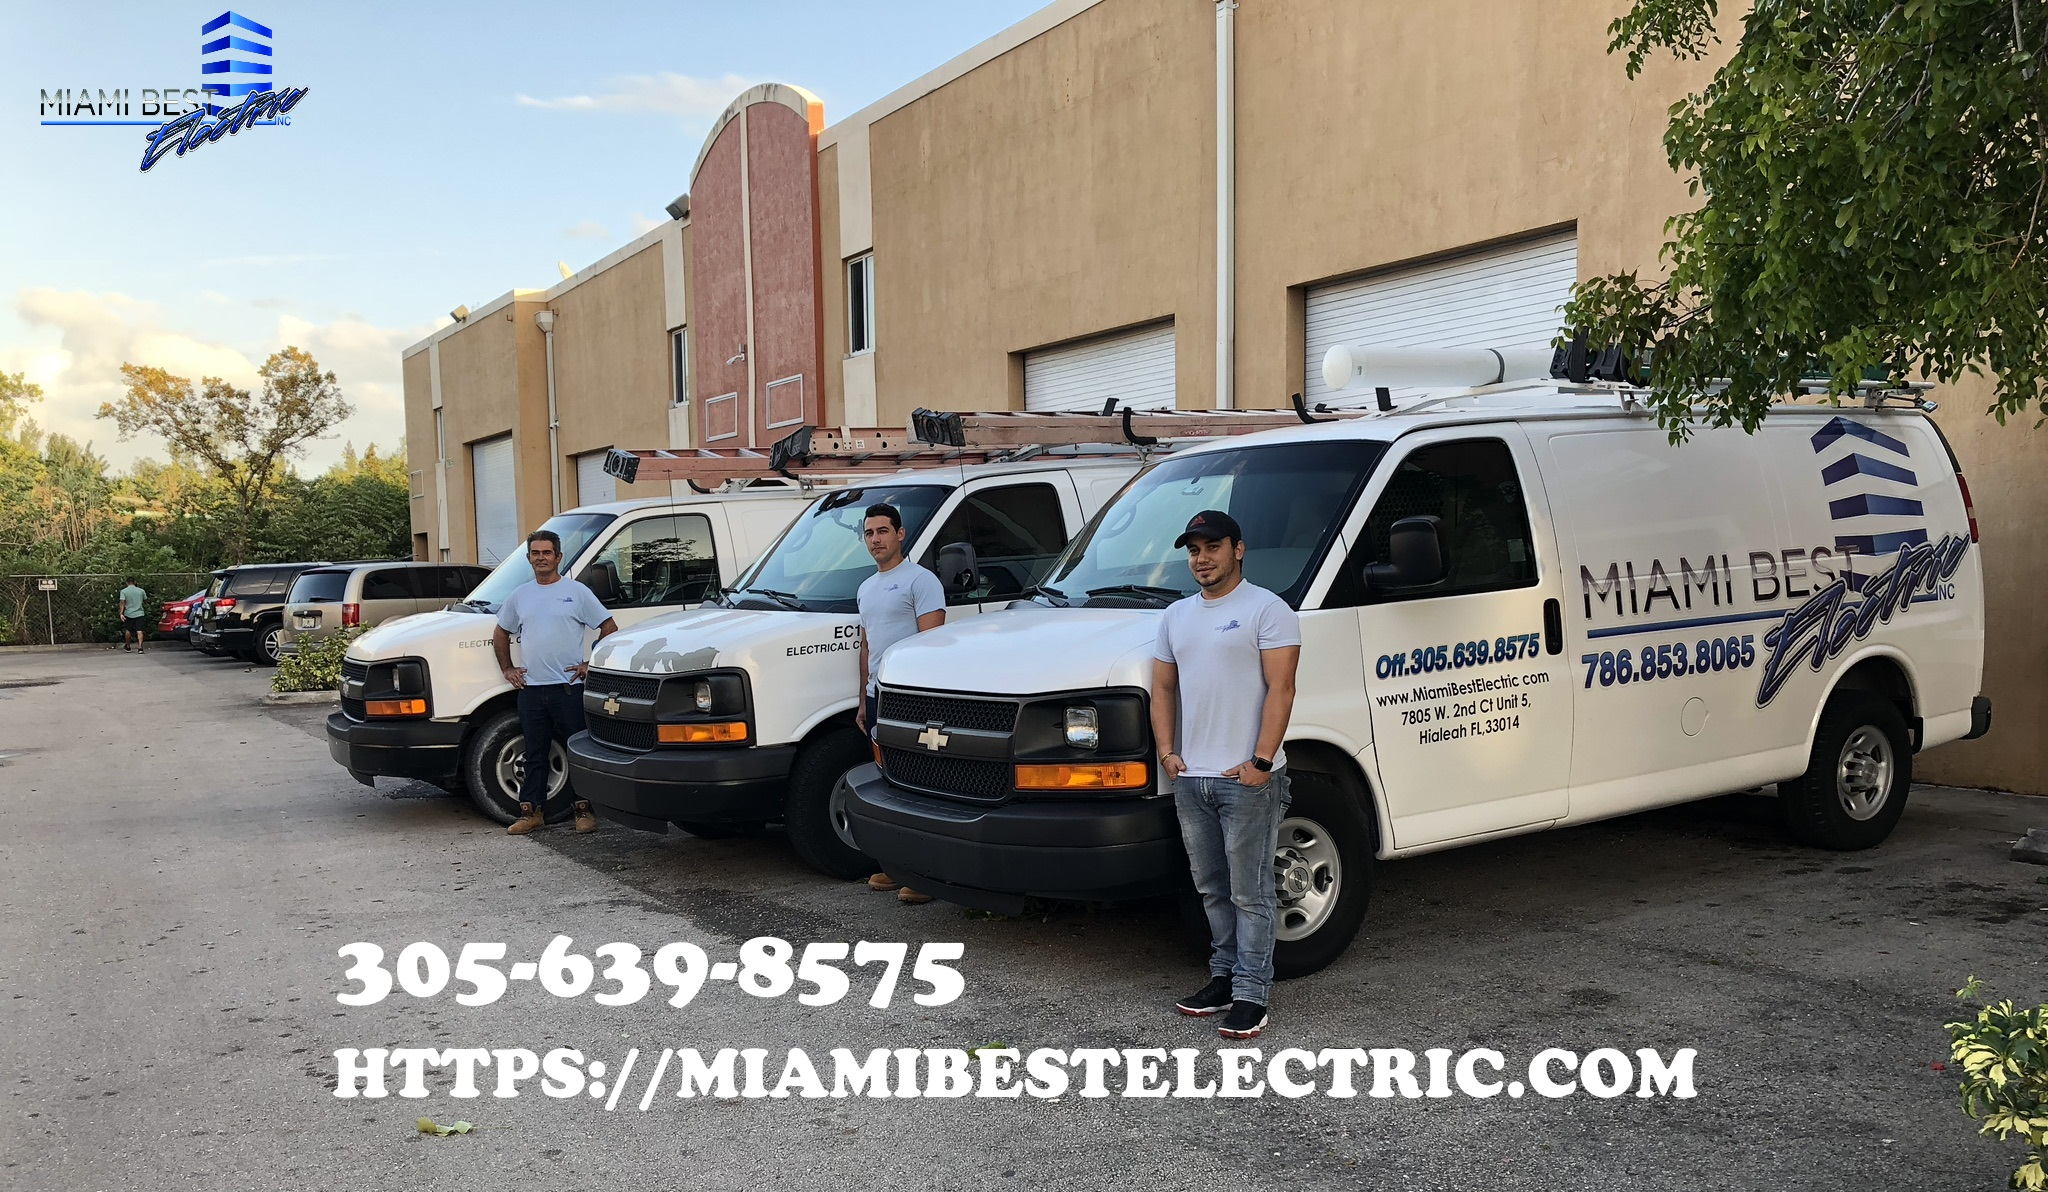 Coral Gables Electrician 305 639 8575 Electrical Services Near Coral Gables